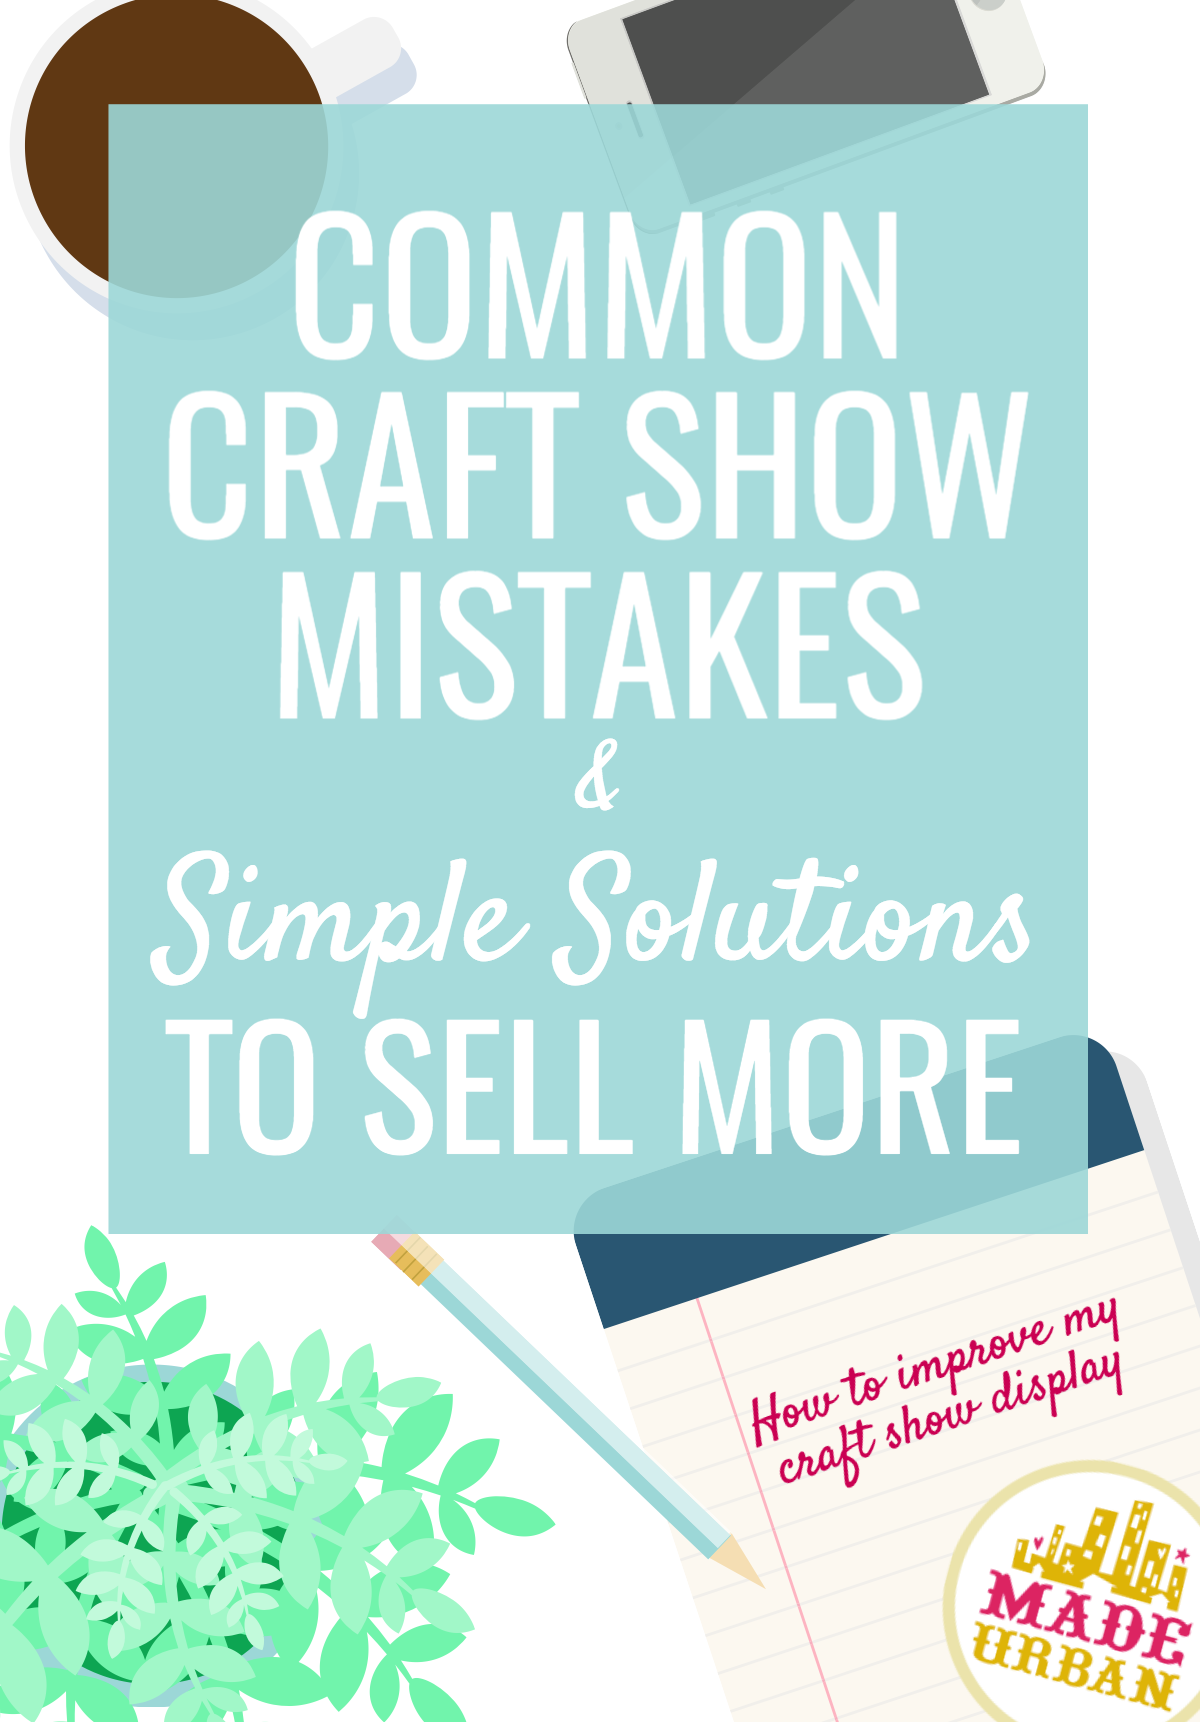 Craft show mistakes not only harm your sales that day, they can also harm your brand and get in the way of future sales. Be sure to avoid these big mistakes